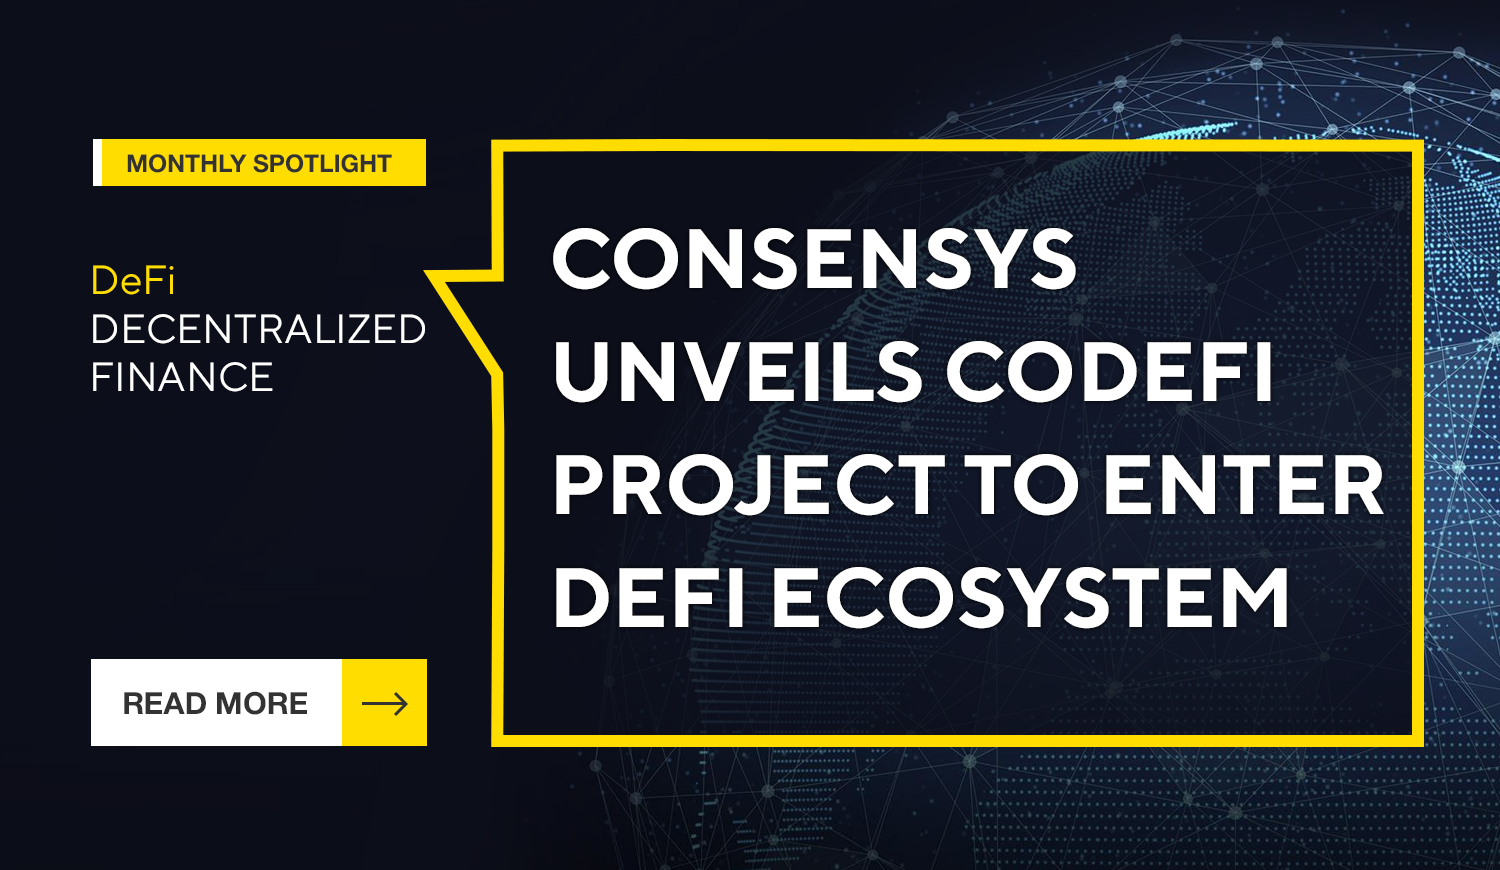 ConsenSys Unveils Codefi Project to Enter DeFi Ecosystem